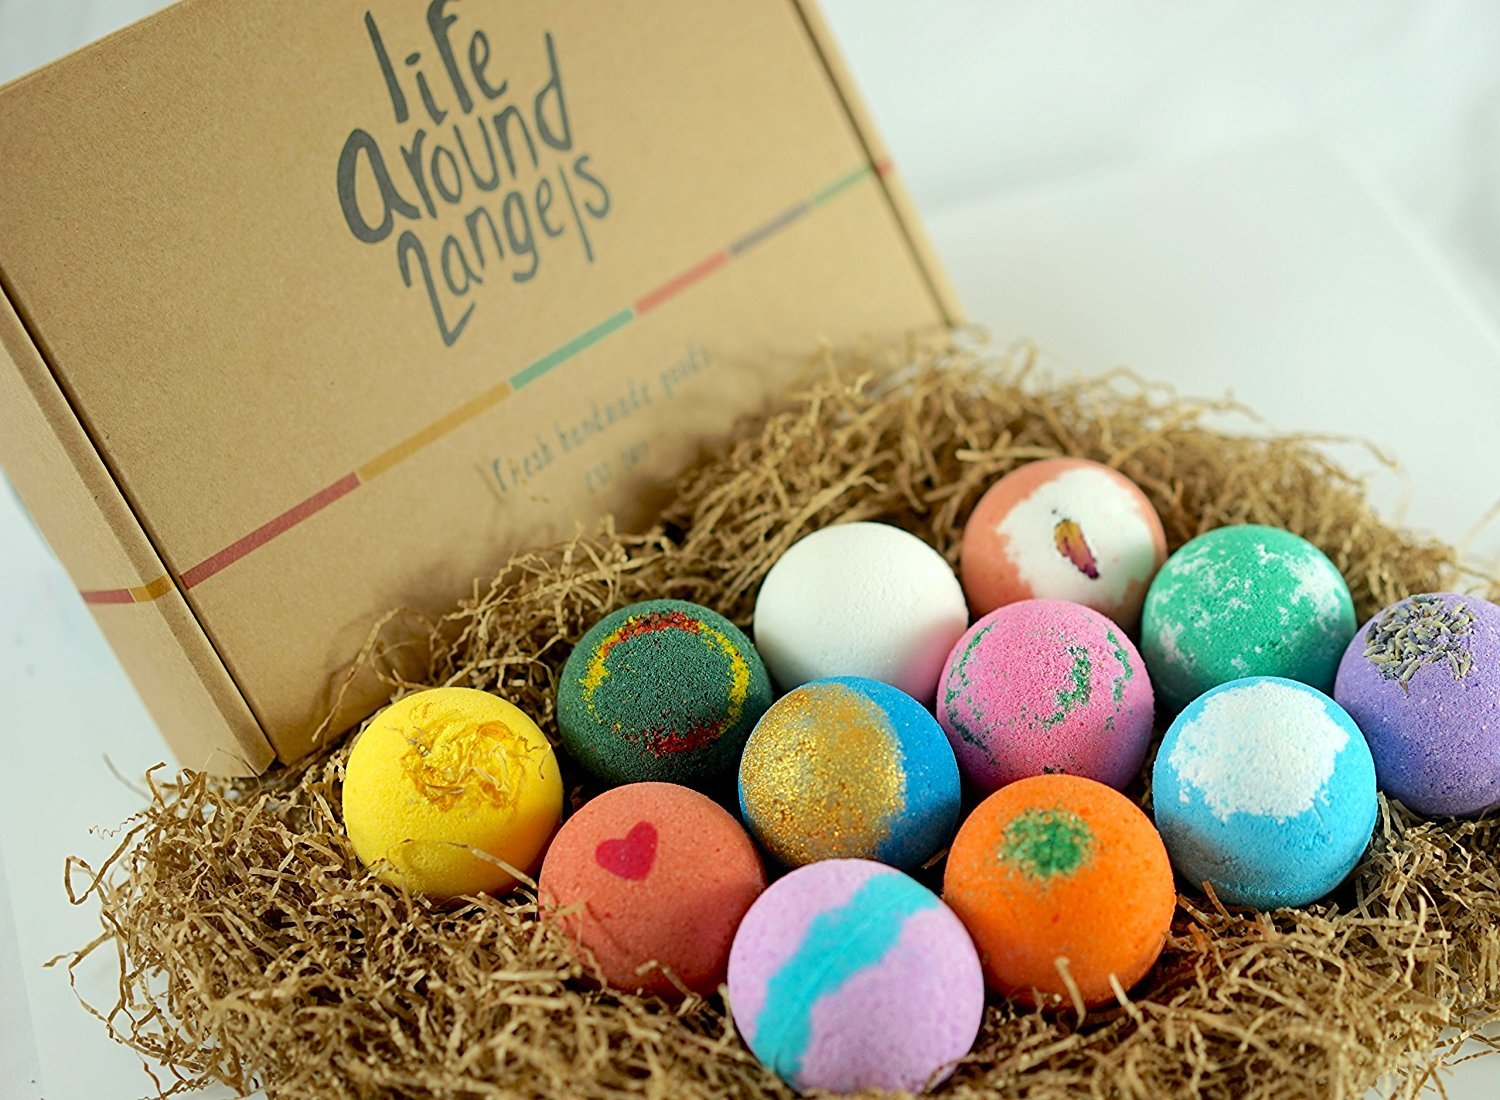 LifeAround2Angels Bath Bombs Gift Set 12 USA made Fizzies, Shea & Coco Butter Dry Skin Moisturize, Perfect for Bubble & Spa Bath. Handmade Birthday Mothers day Gifts idea For Her/Him, wife, girlfriend by LifeAround2Angels (Image #6)